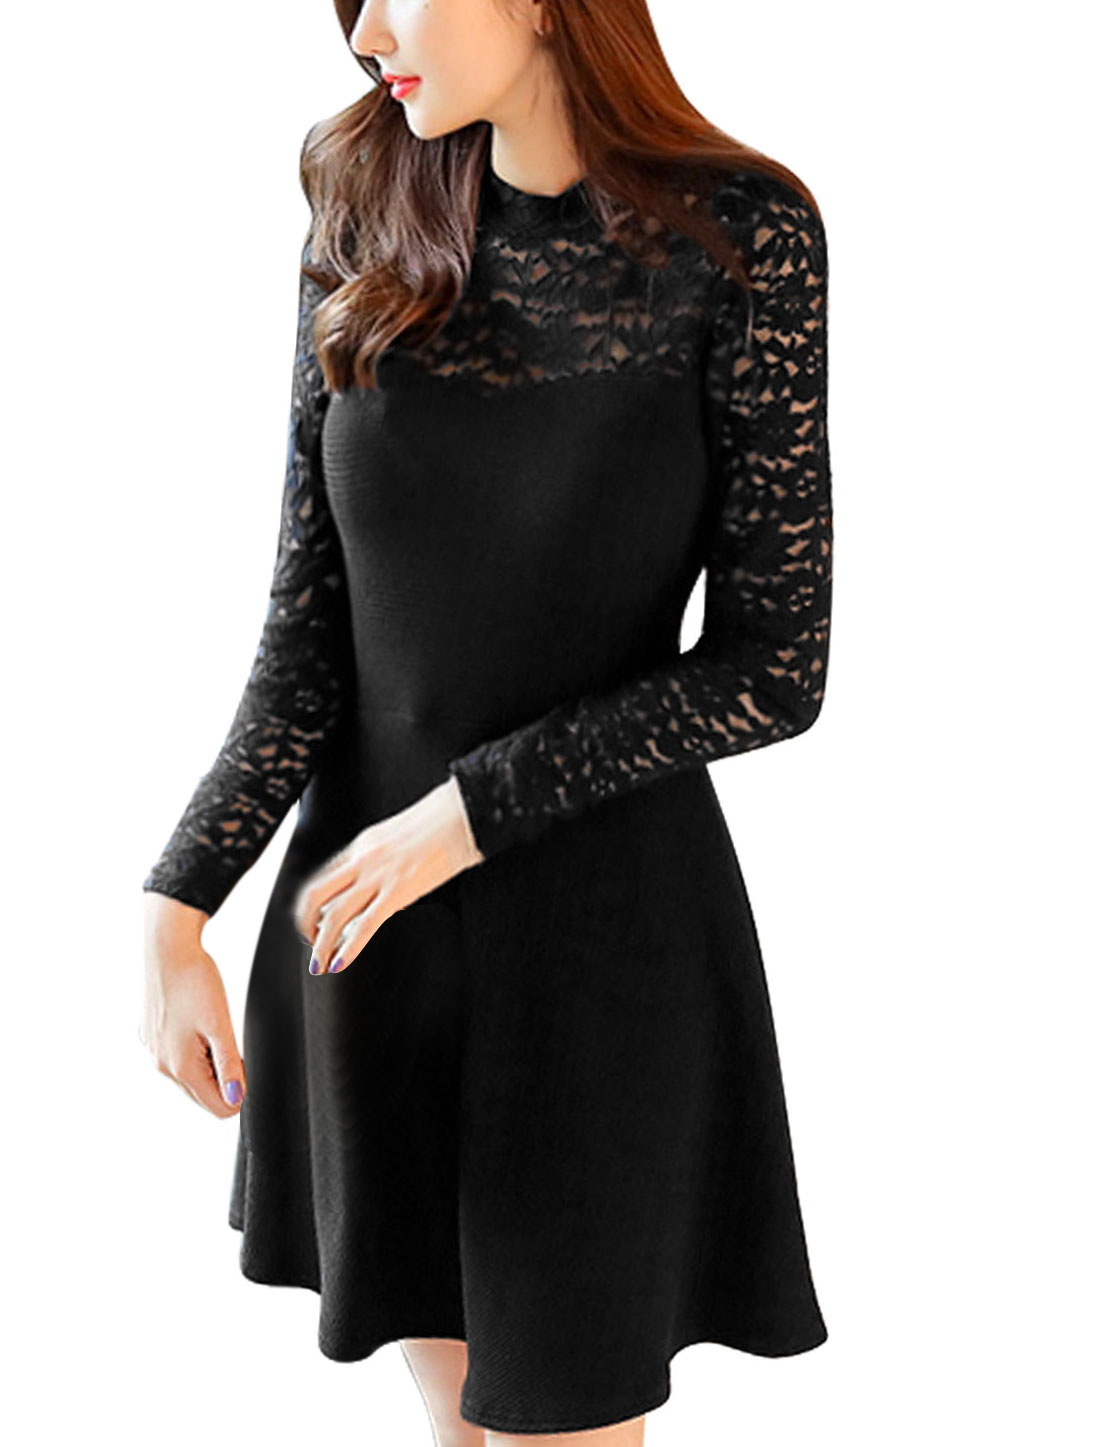 Lady Pullover Lace Panel Slim Fit Casual Dress Black M